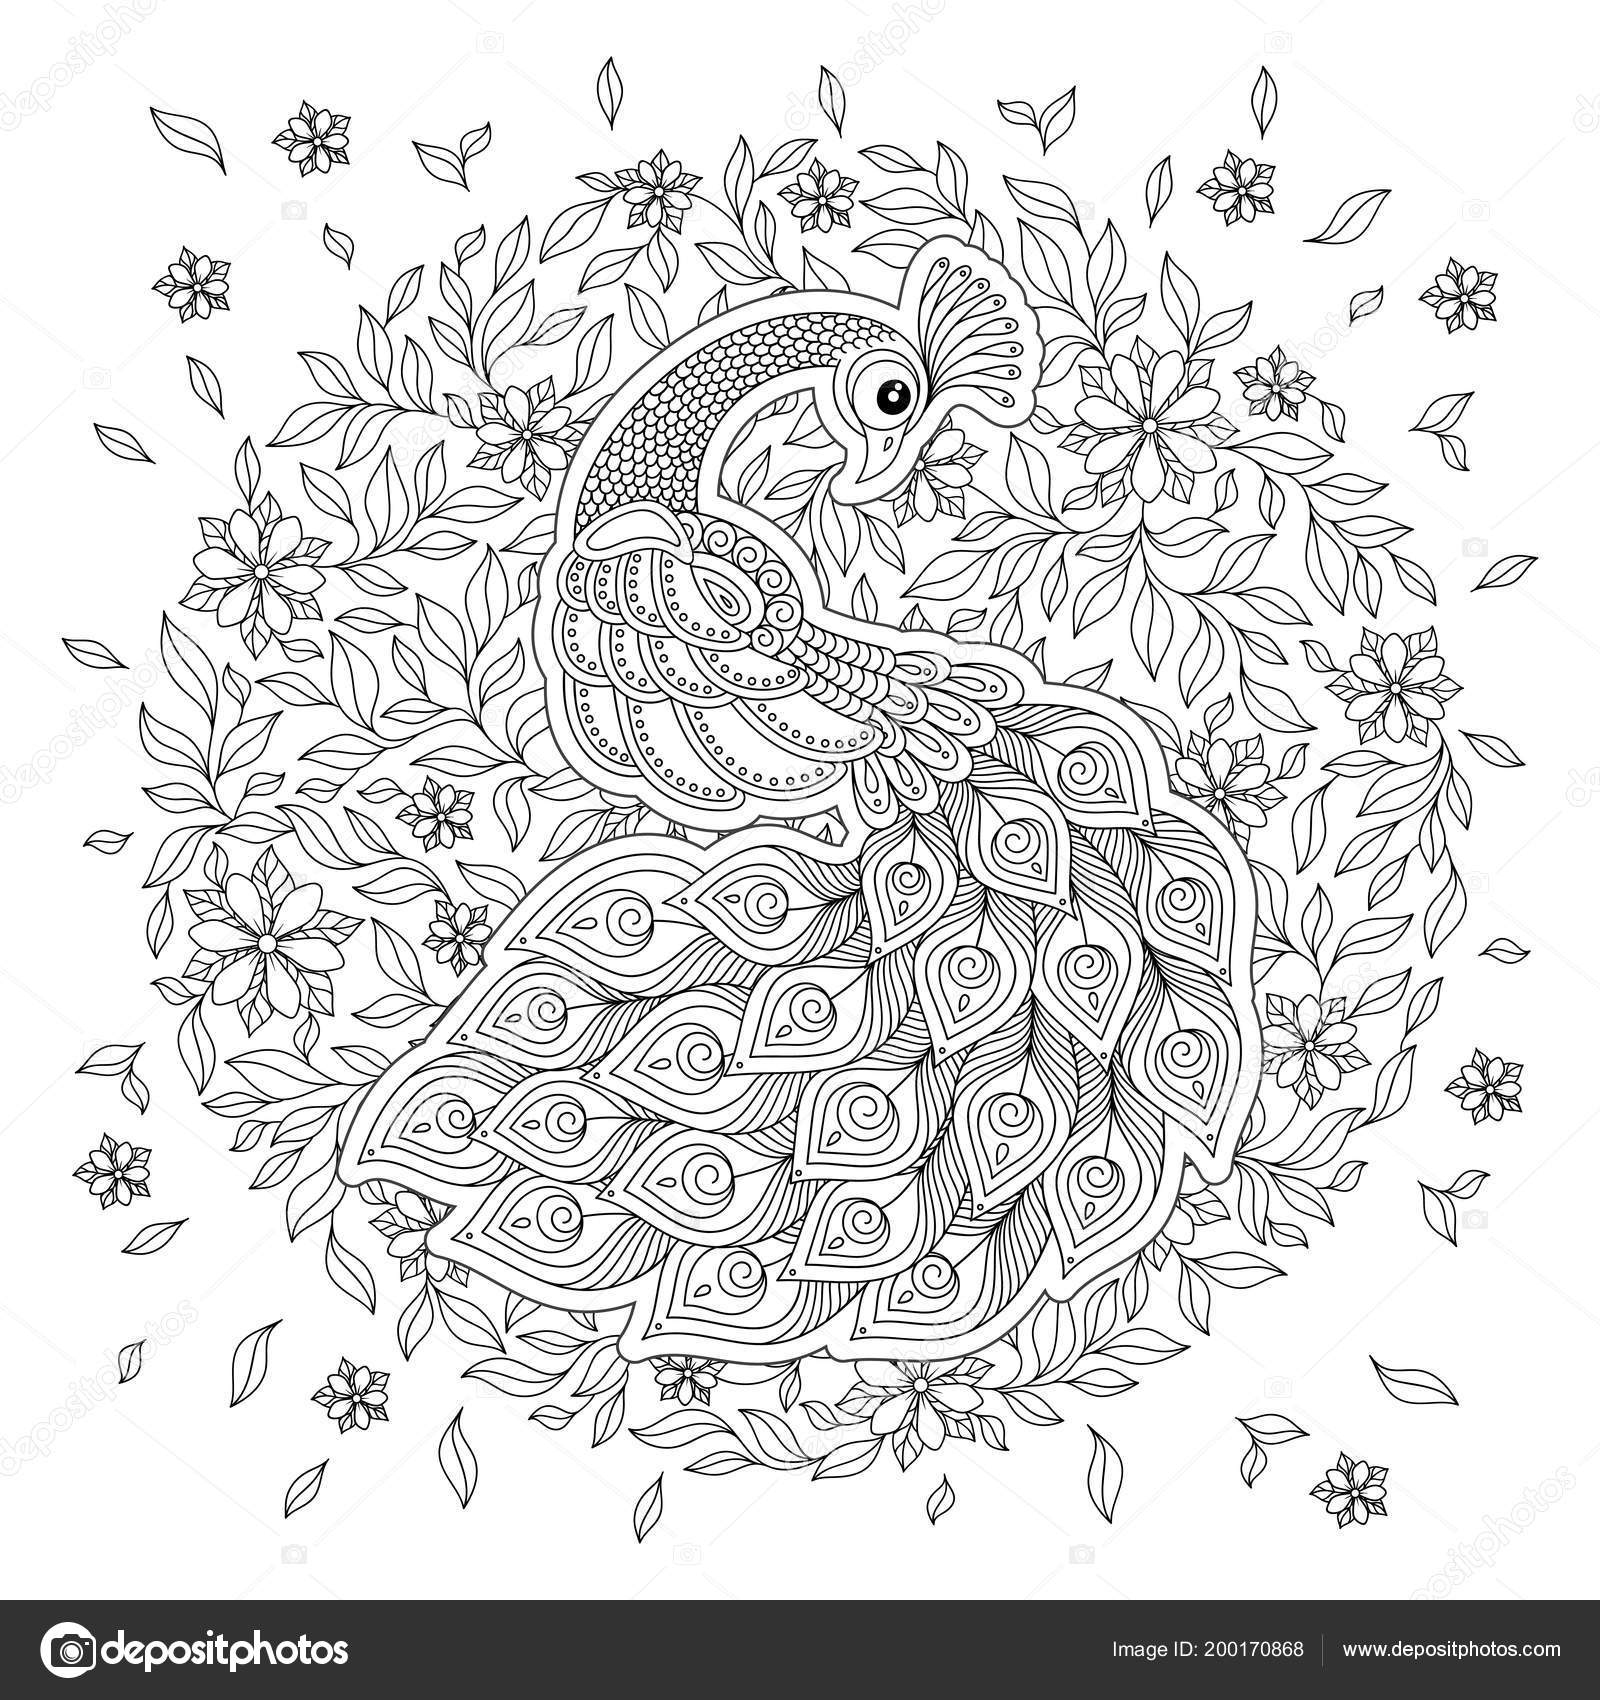 Peacock Coloriage Adulte Stress Noir Blanc Main Dessiné Doodle Pour